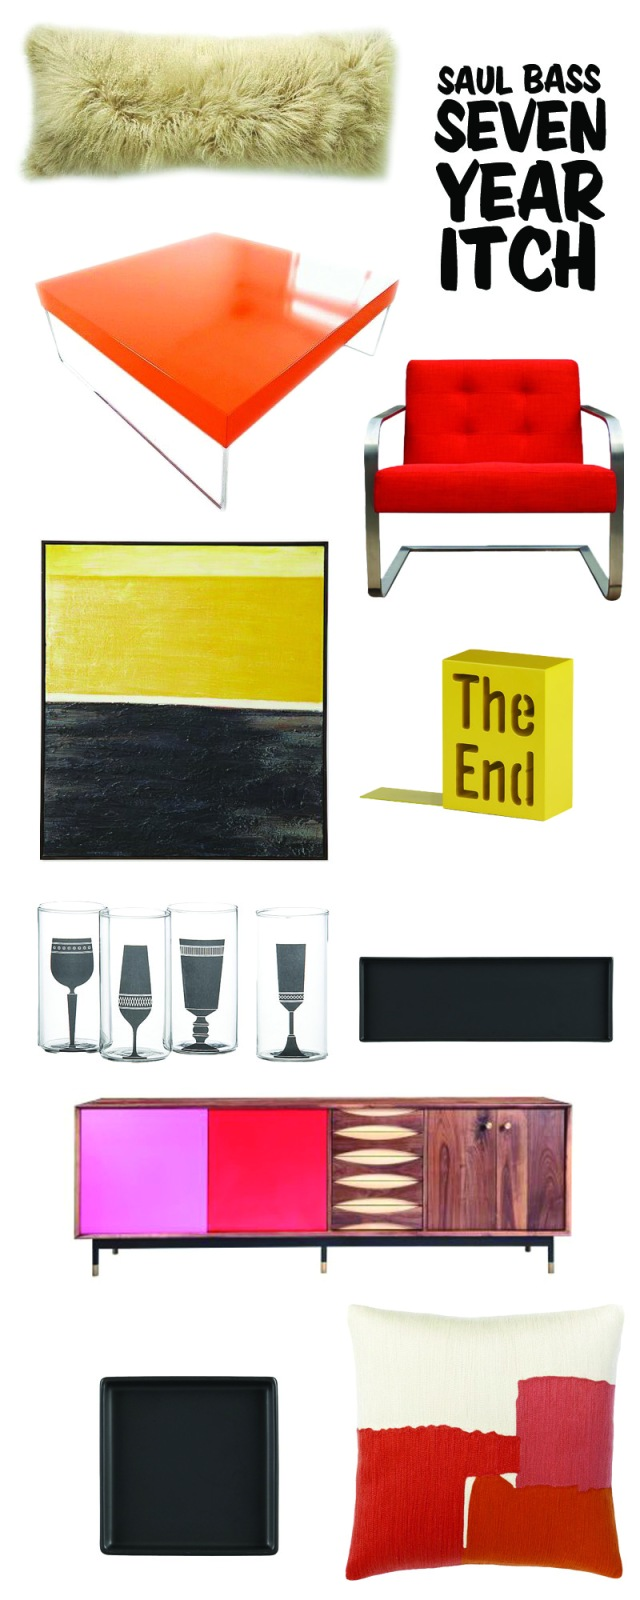 saul bass inspired interiors copy